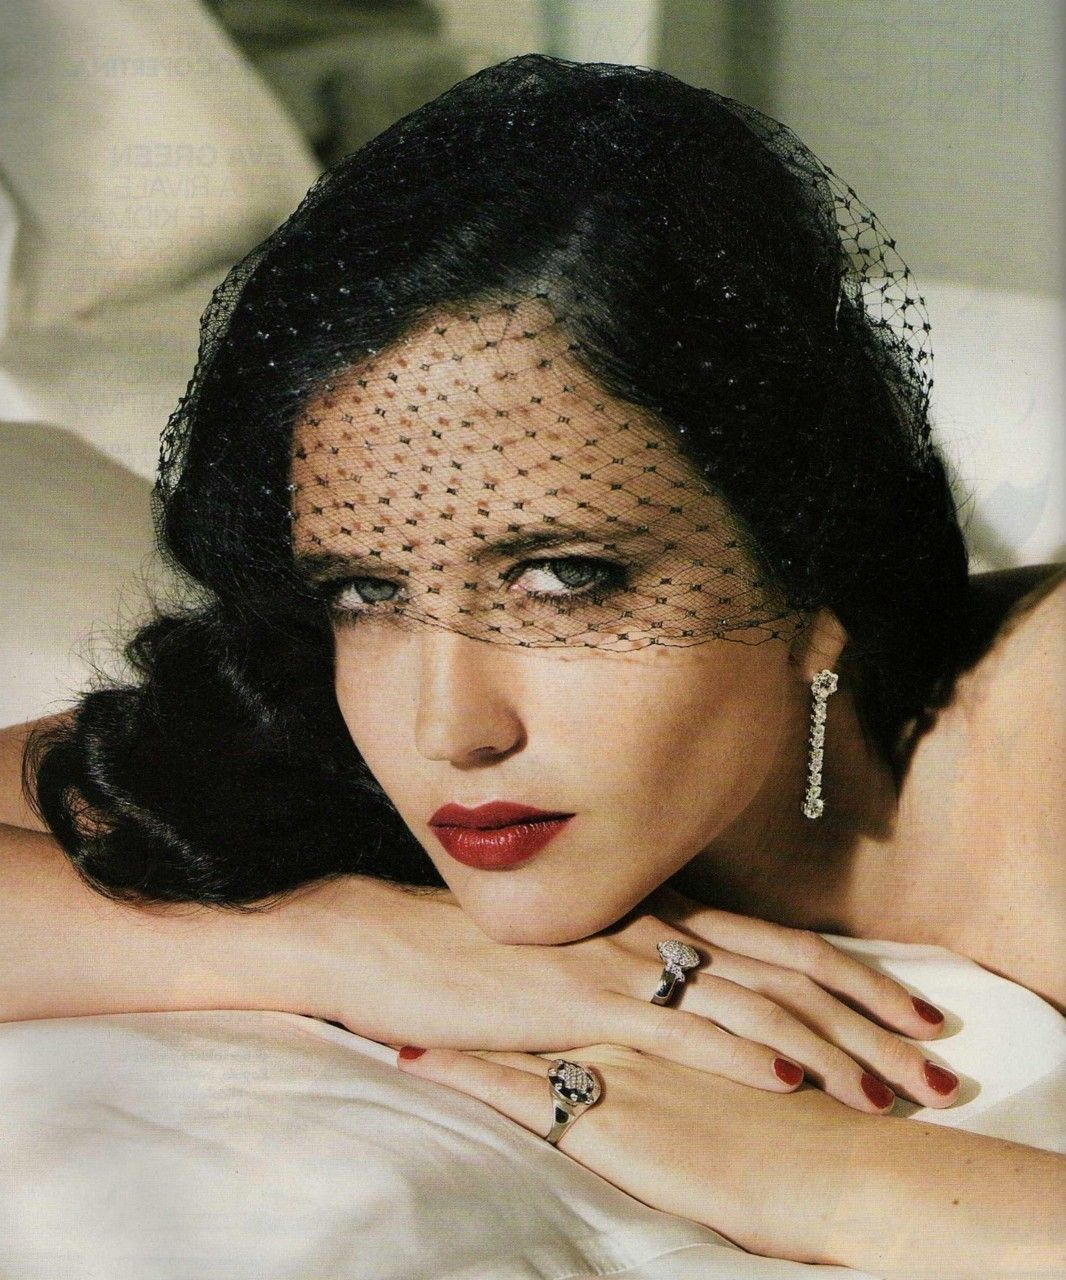 Eva Green photographed by Patrick Demarchelier for Glamour